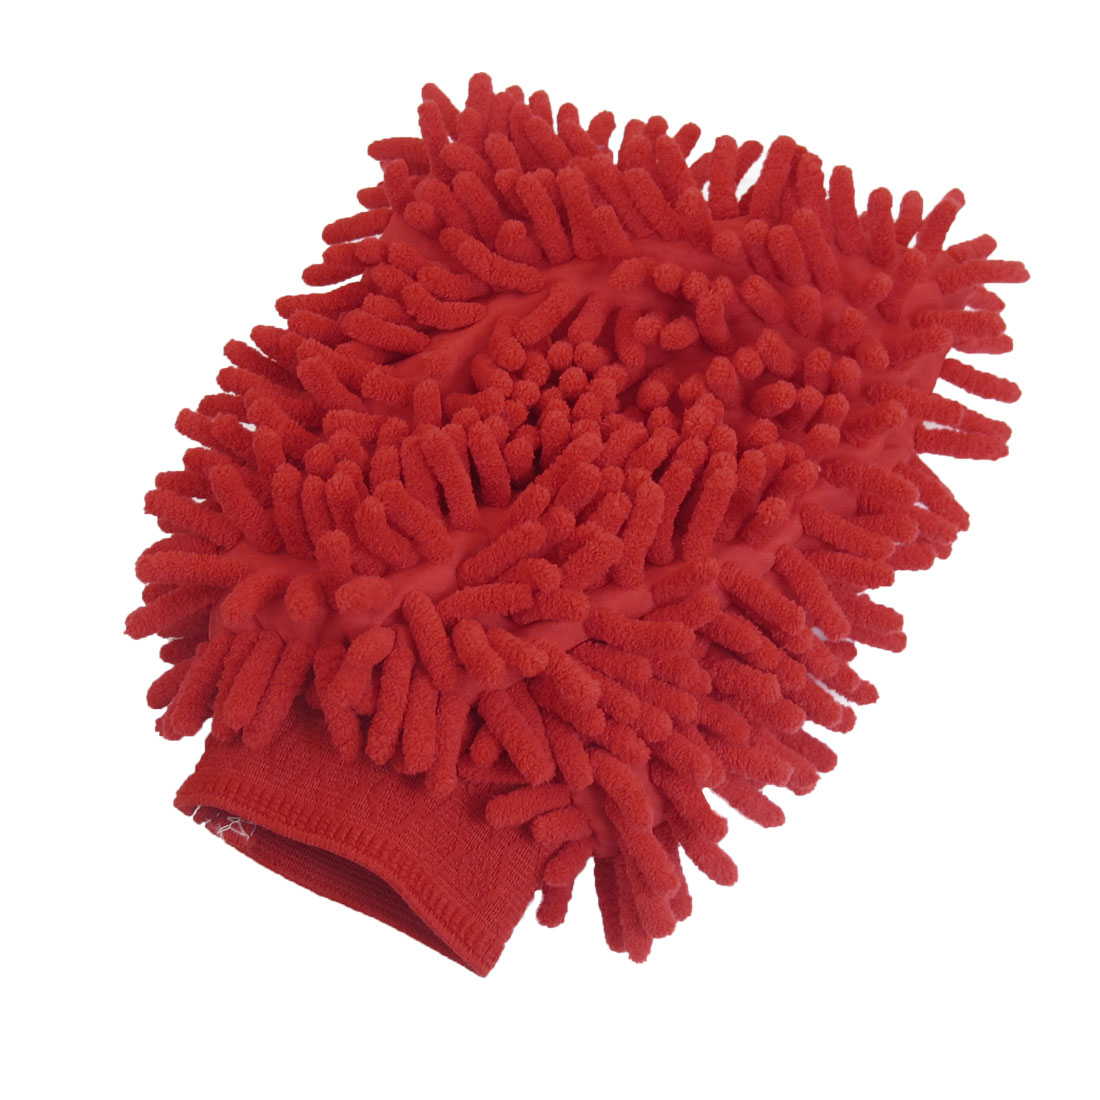 Microfiber Chenille Wash Mitt Mitten Car Cleaning Glove Red